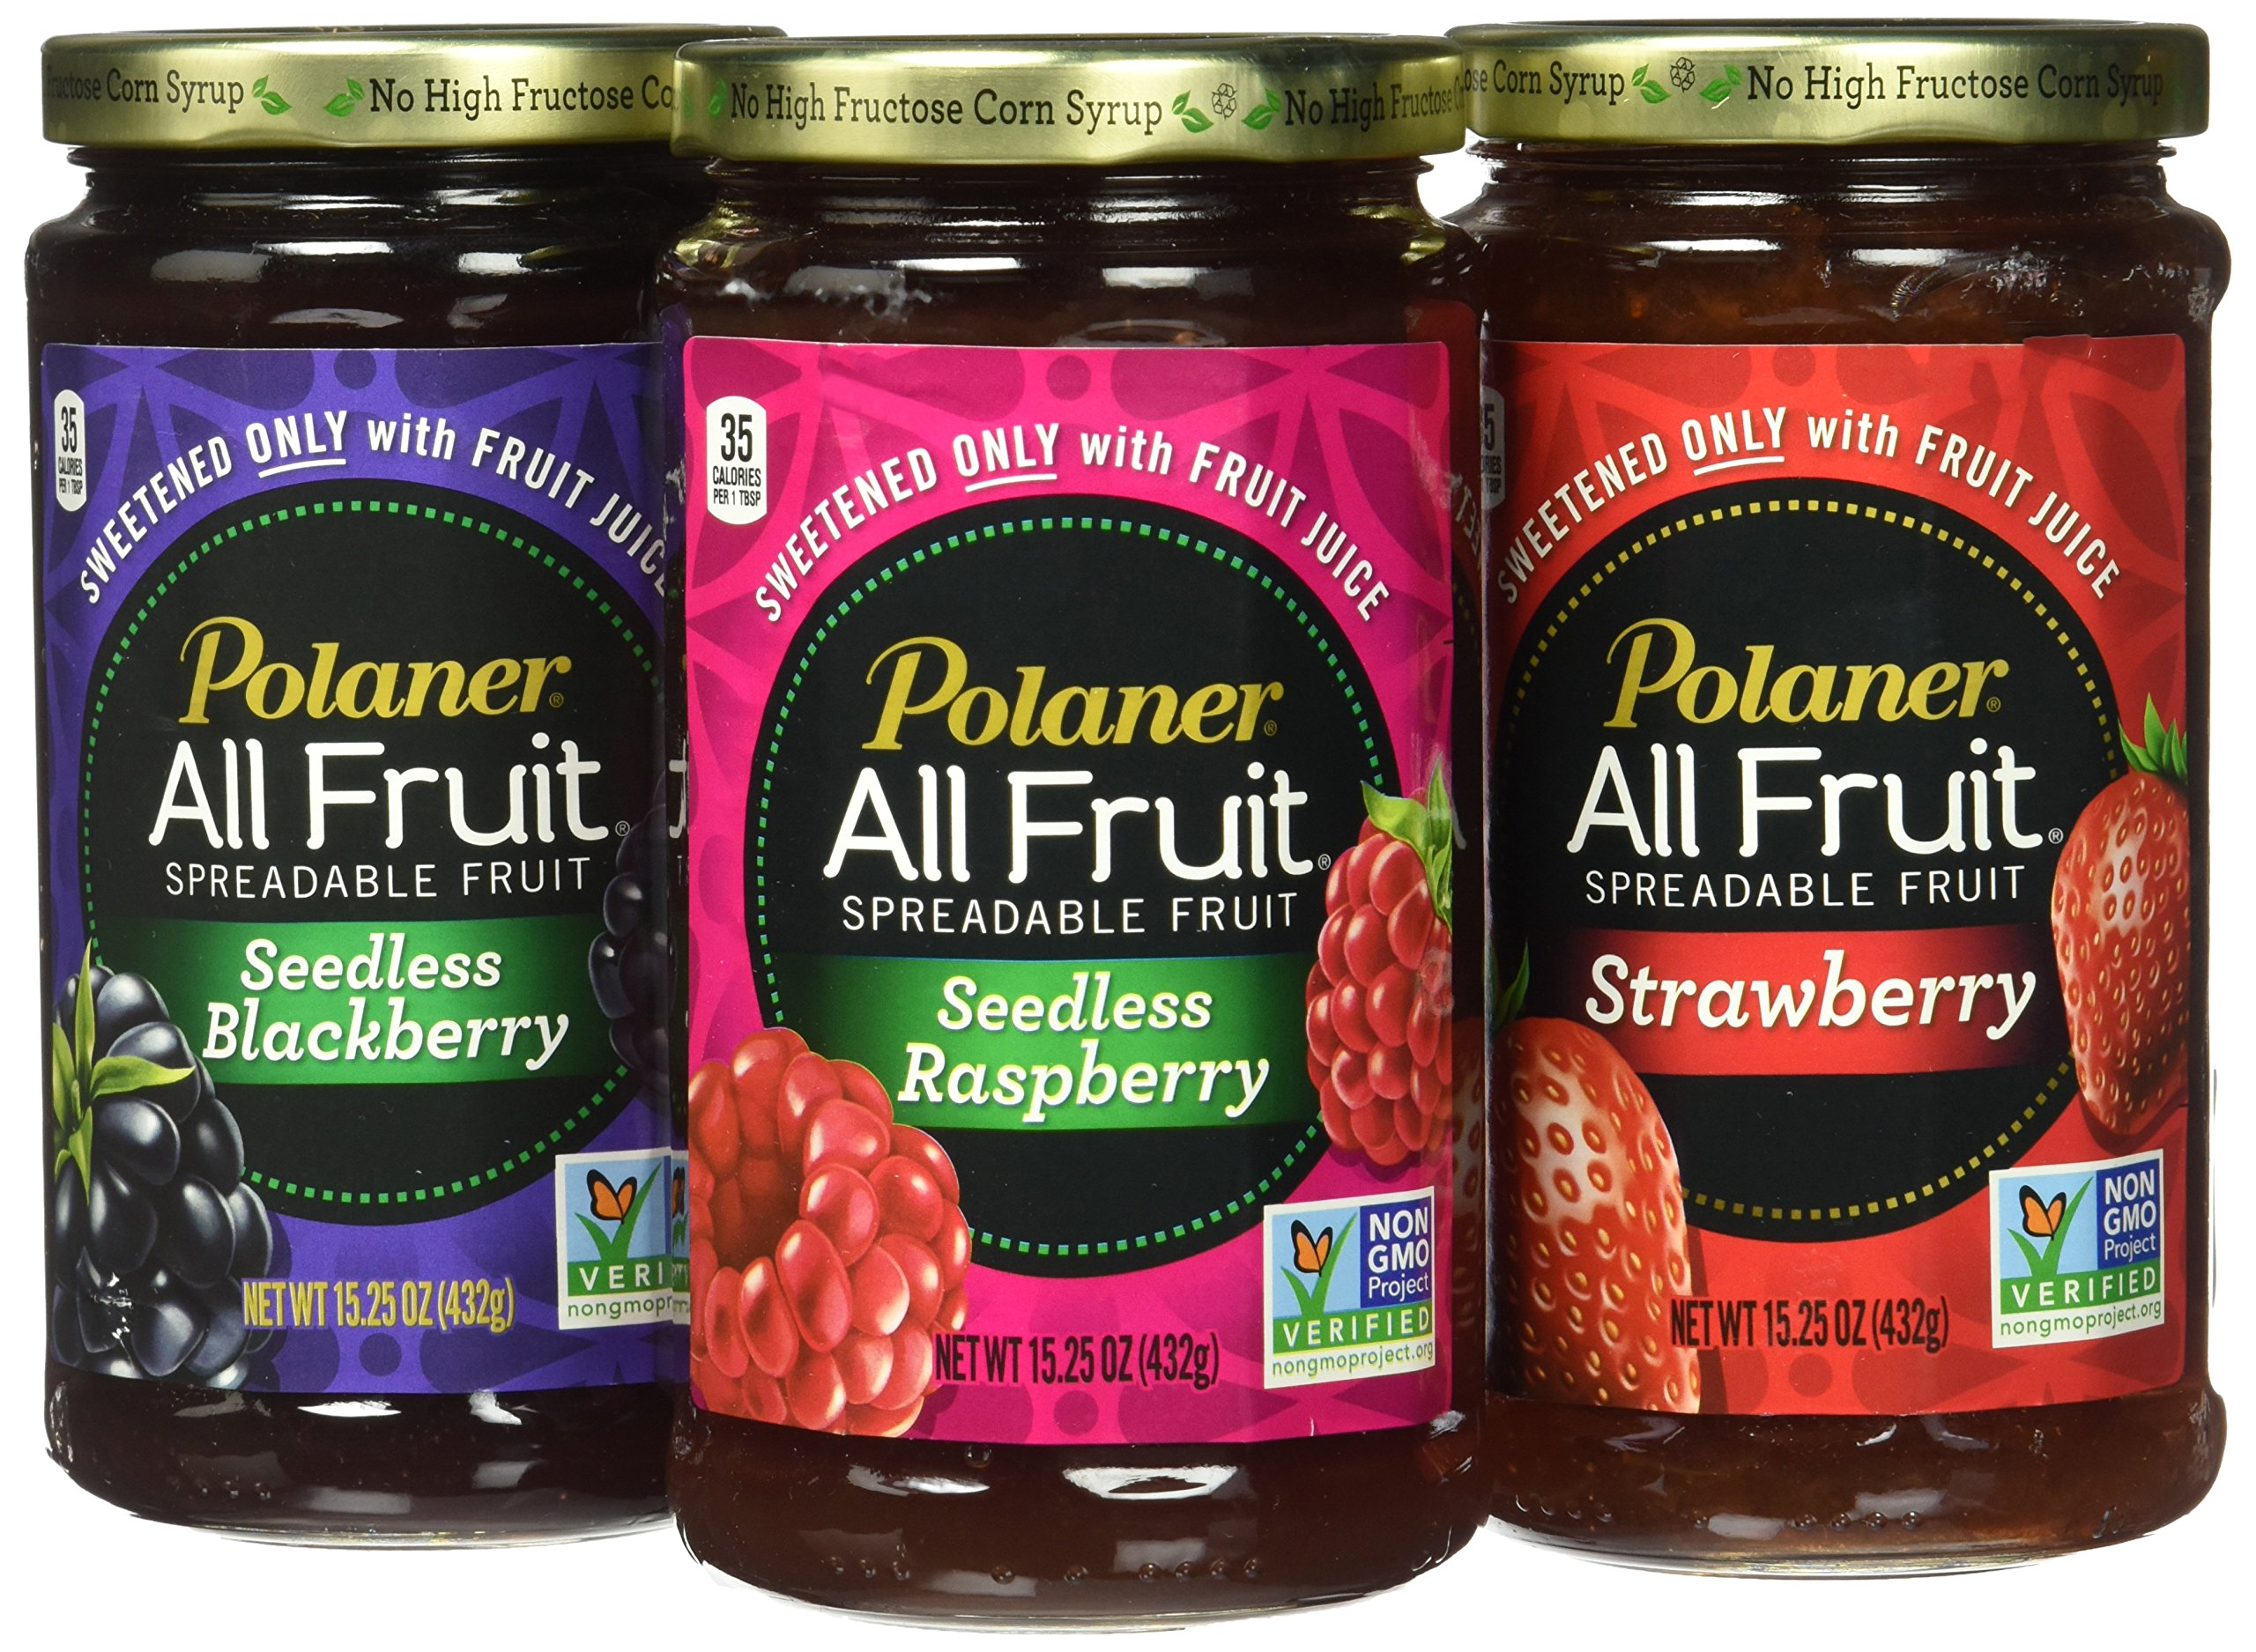 Polaner All Fruit Non-GMO Spreadable Fruit, Assorted Flavors, 15.25 oz (Pack of 3)